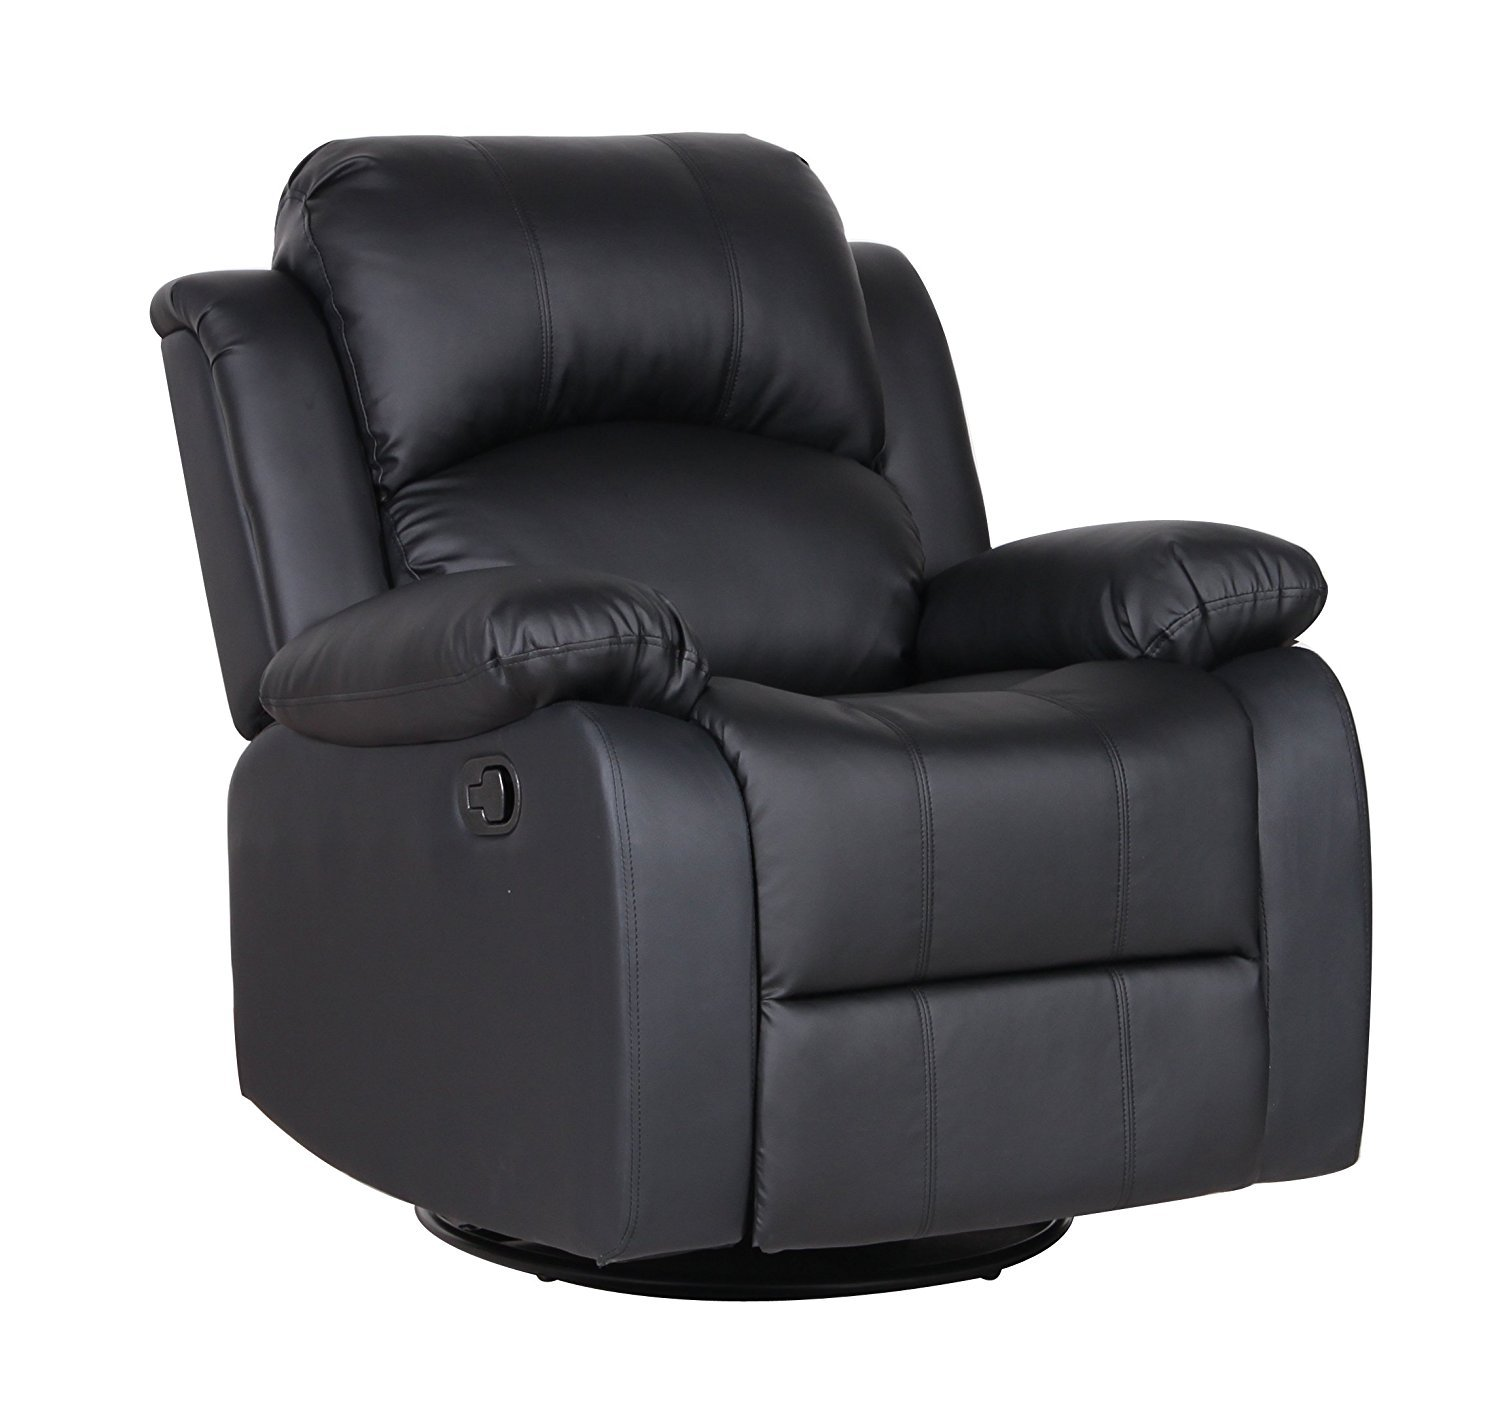 Swivel recliner chairs for living room original swivel recliner chairs for living room 642x482 - Swivel recliner chairs for living room ...